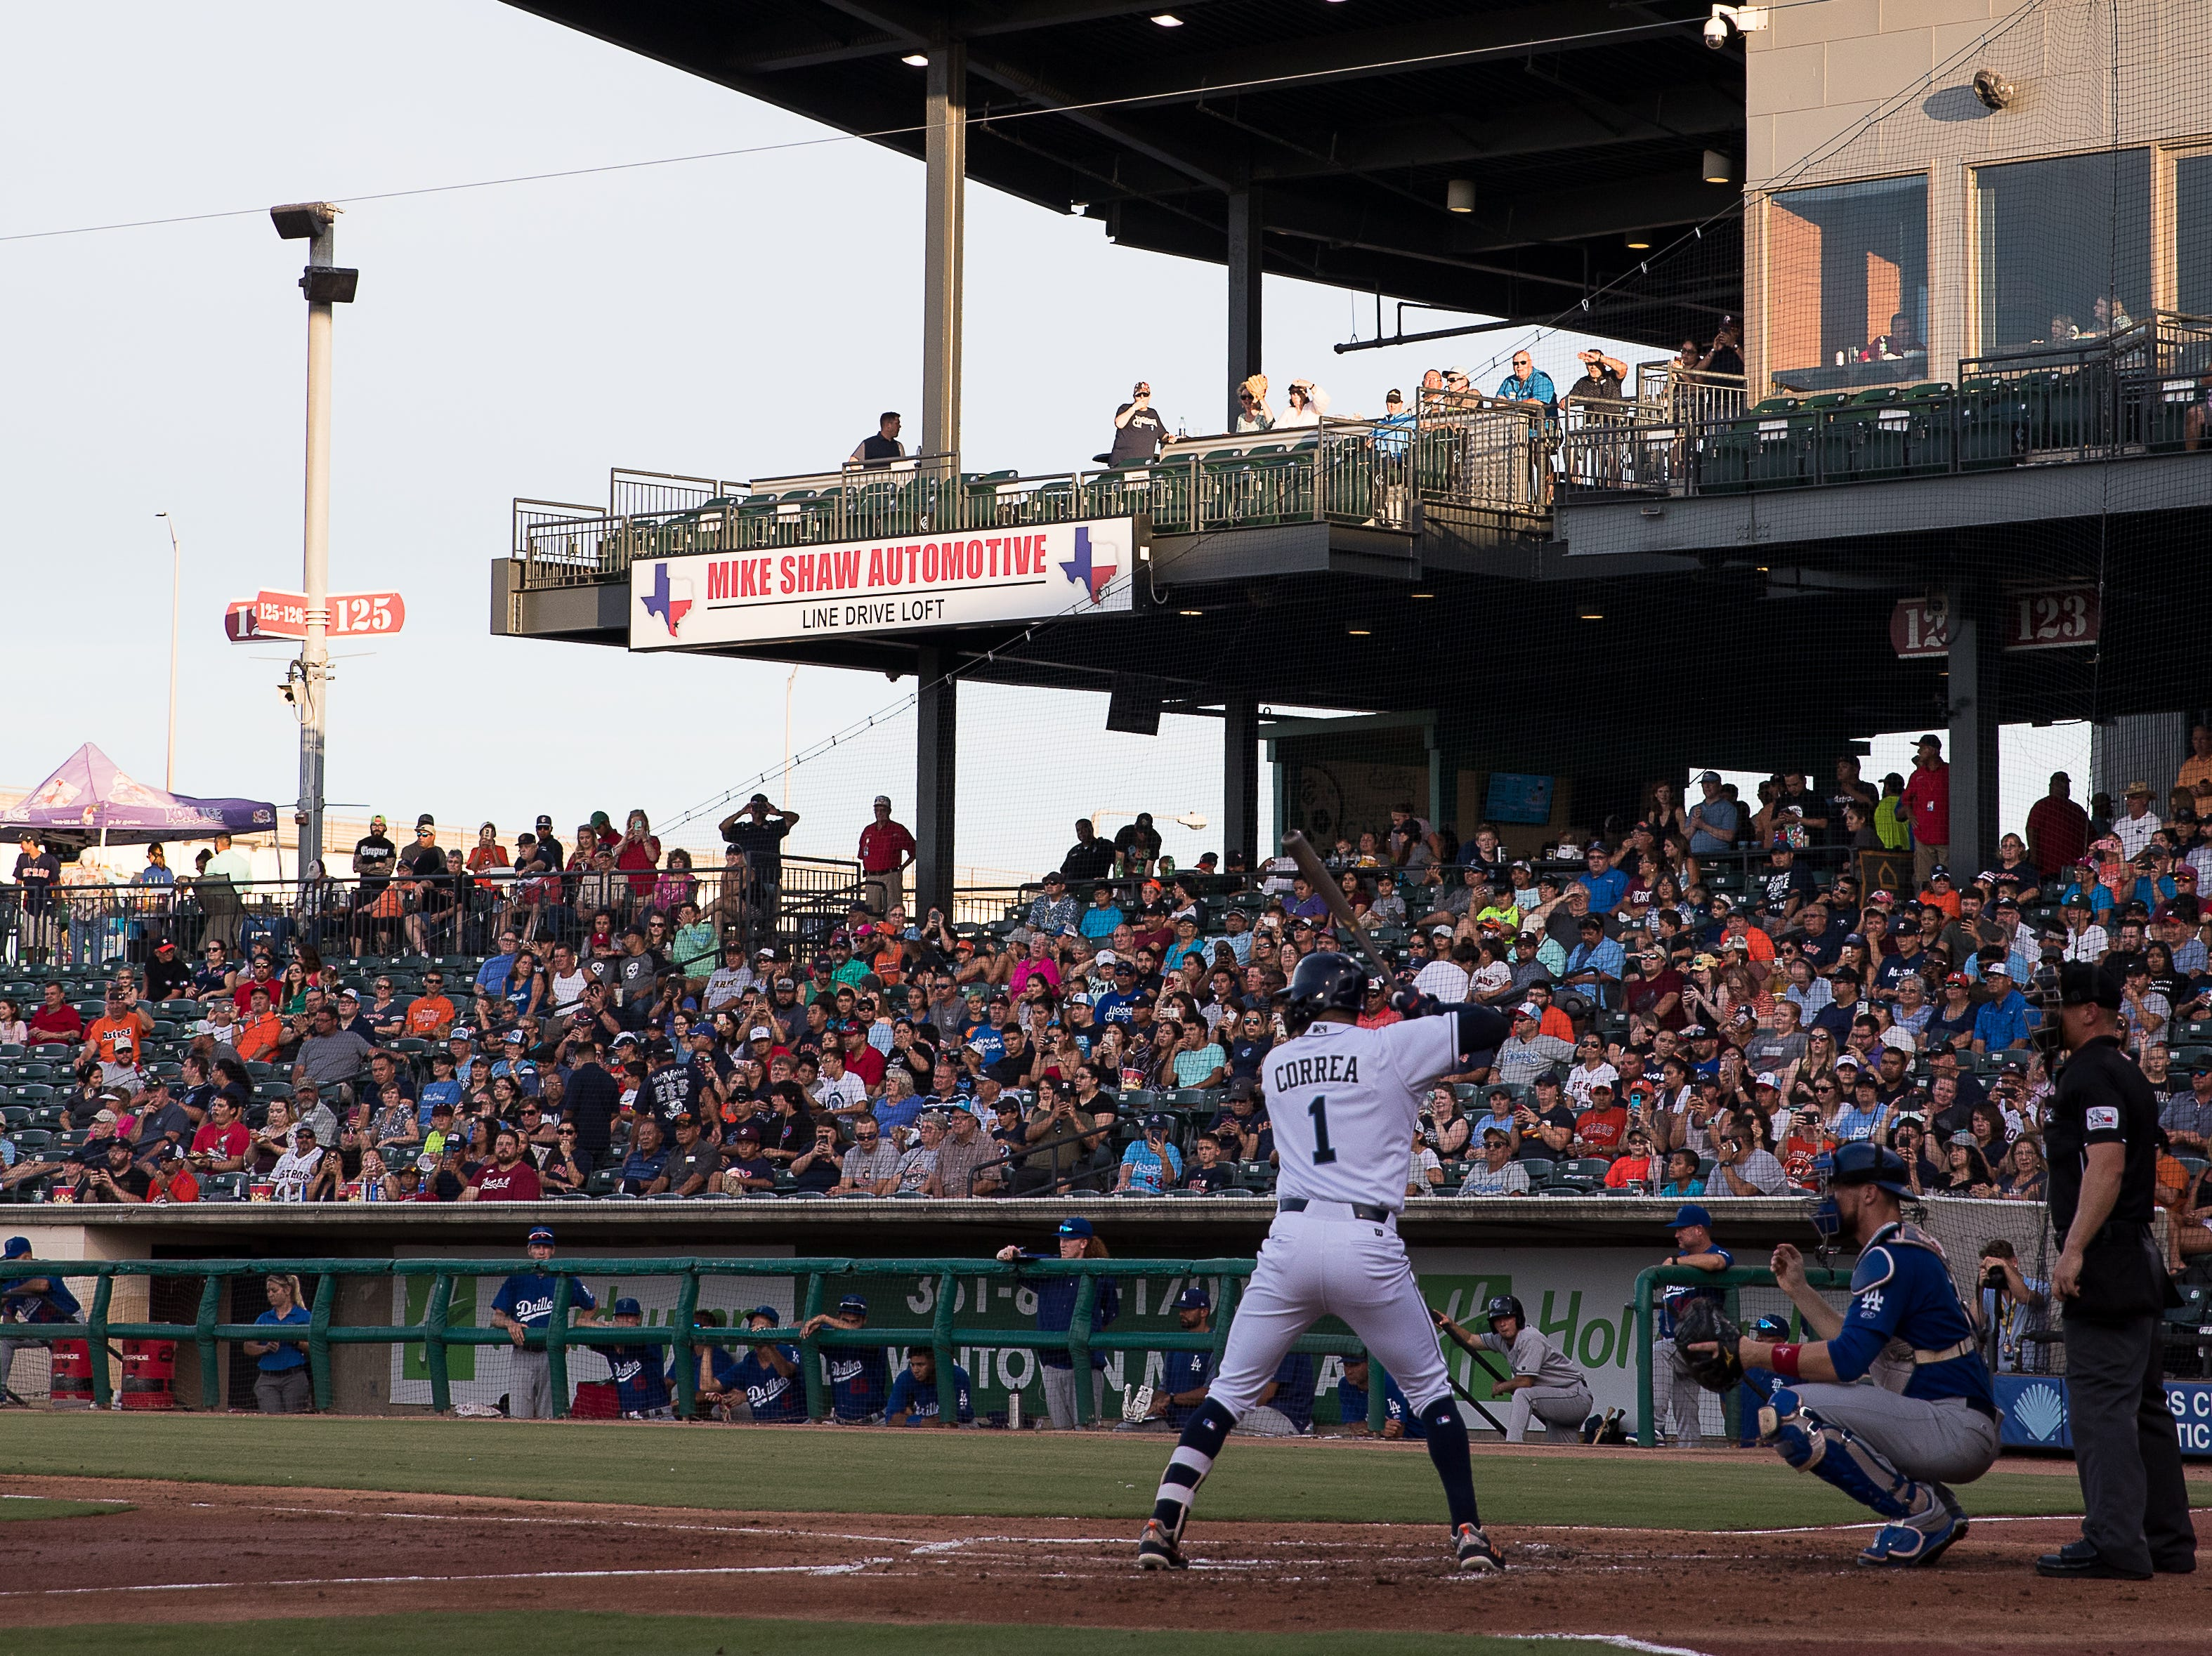 Carlos Correa, from the Houston Astros, at bat during the Hooks' game against the Tulsa Drillers at Whataburger Field on Tuesday, Aug. 7, 2018.  Correa is currently playing for the Hooks on rehab assignment.